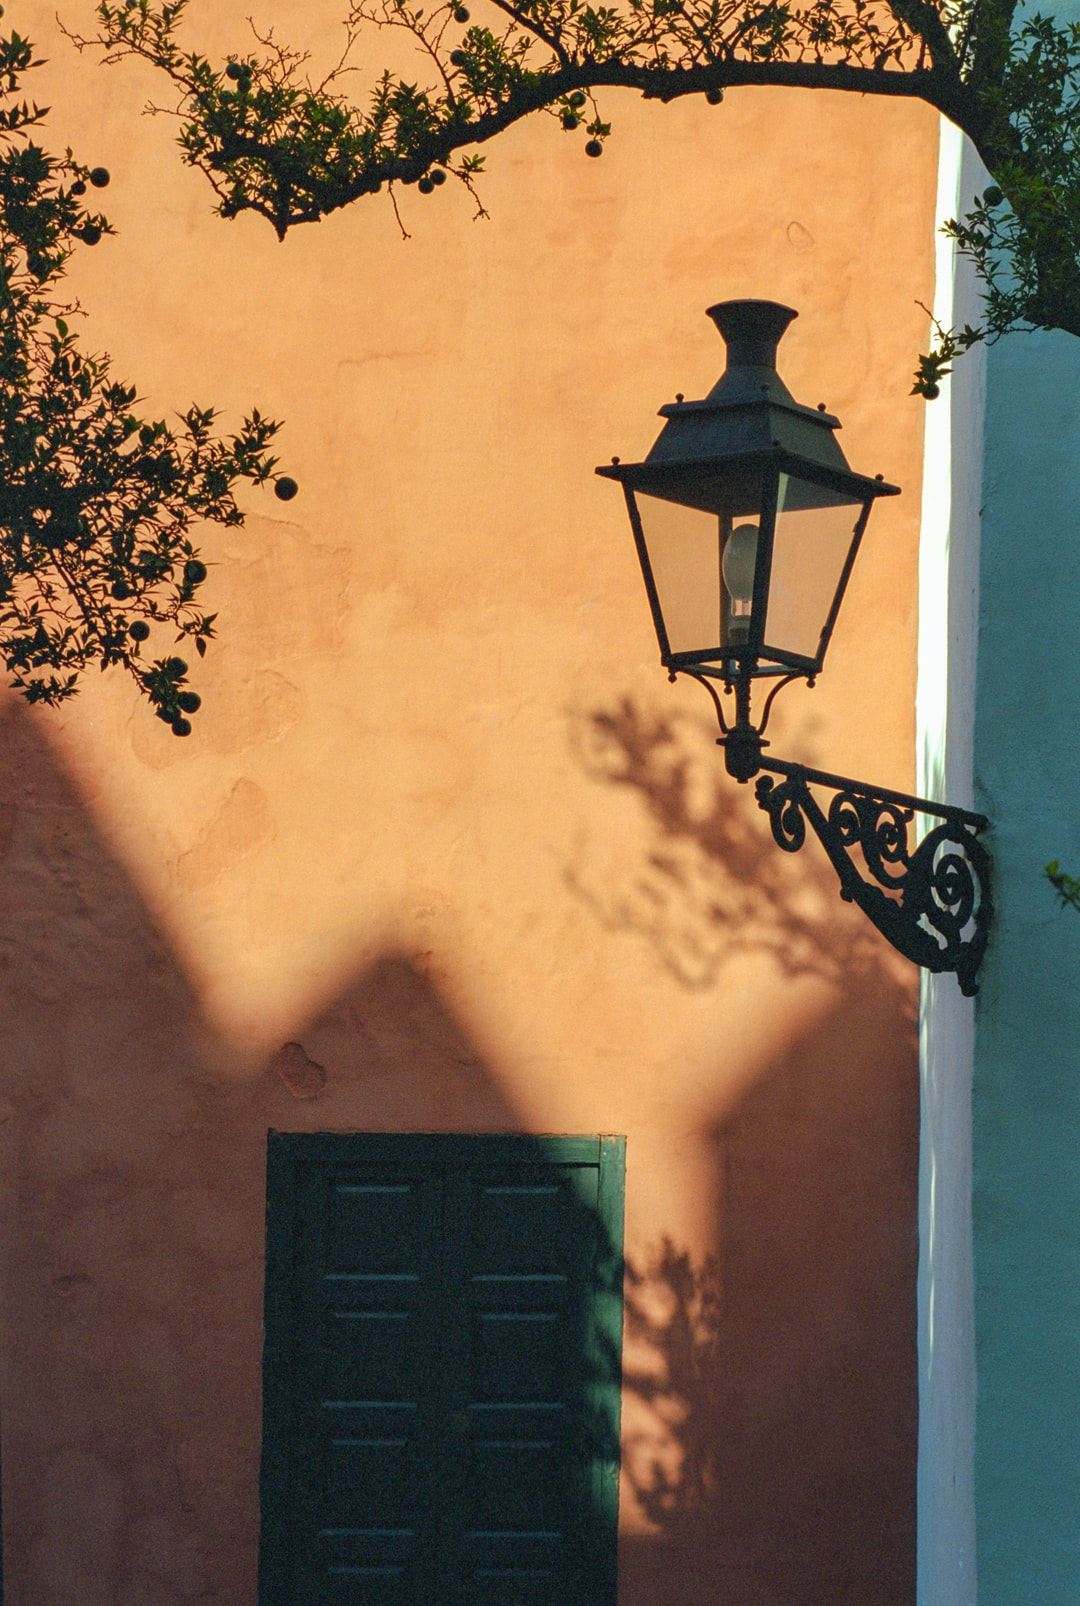 The afternoon shadows on the terracotta walls of the Alcazar gave a nice frame for this old lamp. Love the texture and the film grain in this image. Shot on 35mm film, Canon A2E.